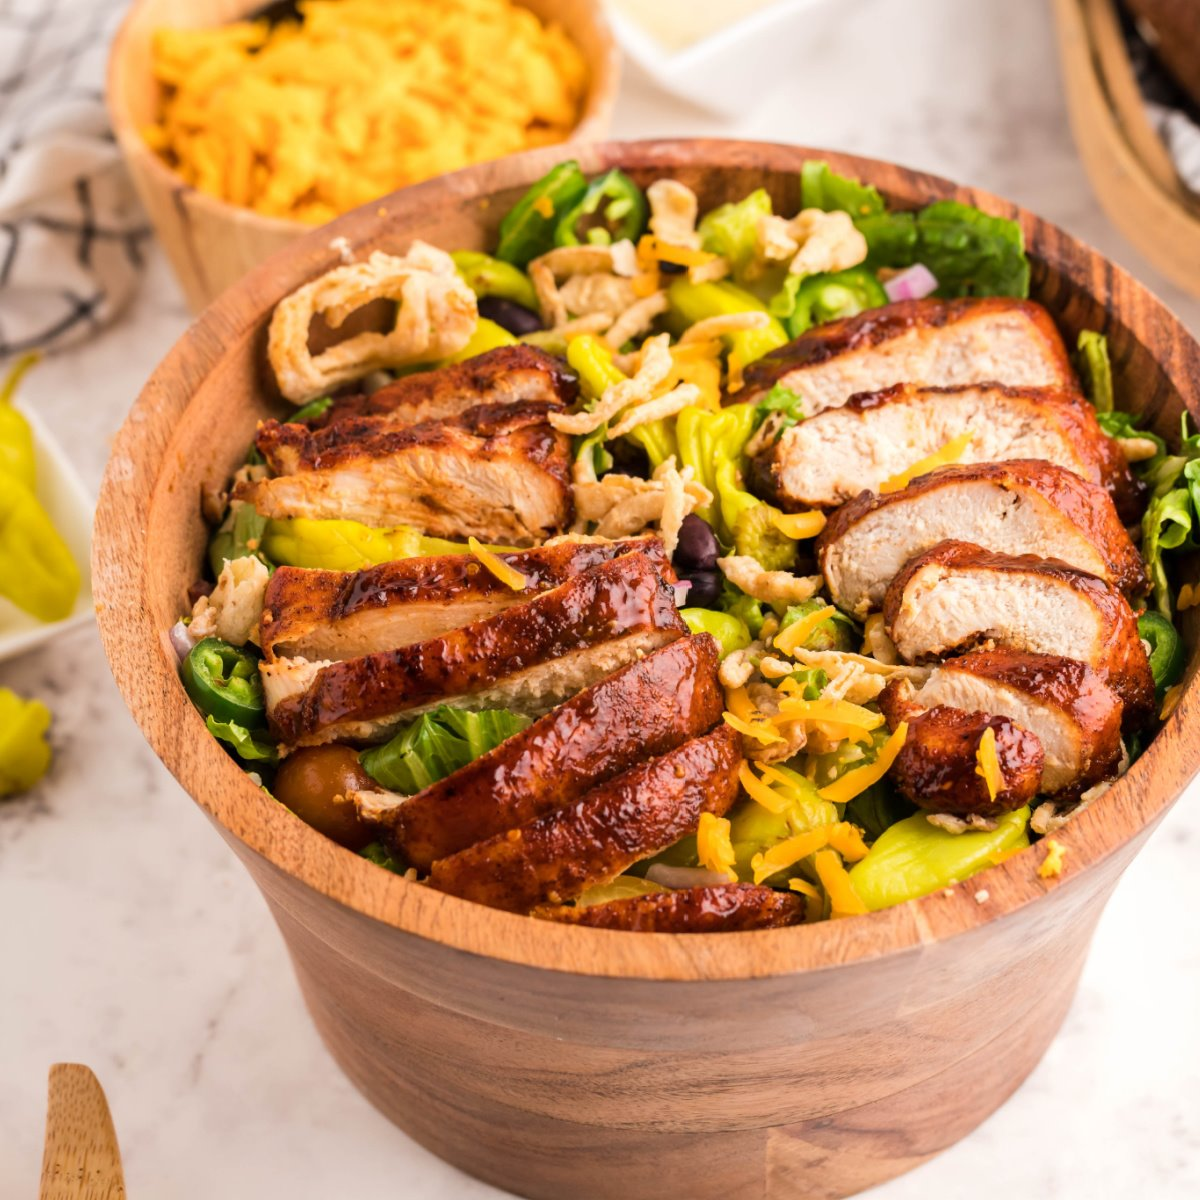 Grilled chicken salad in a large wooden salad bowl on a marble surface.